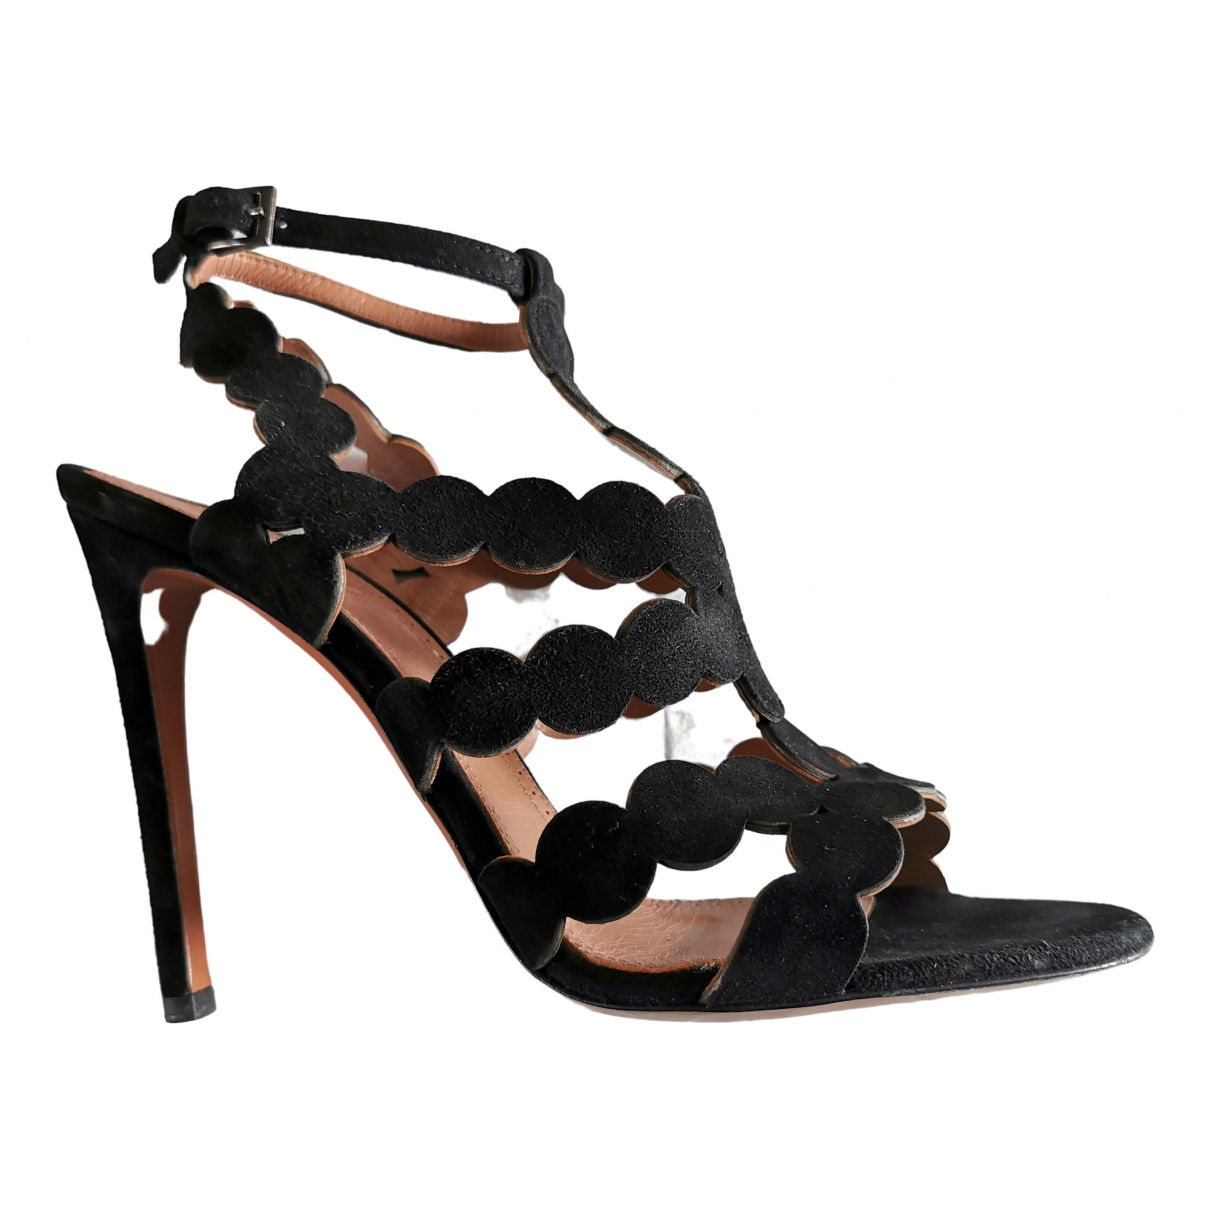 Alaïa \N Black Suede Sandals for Women 38.5 EU